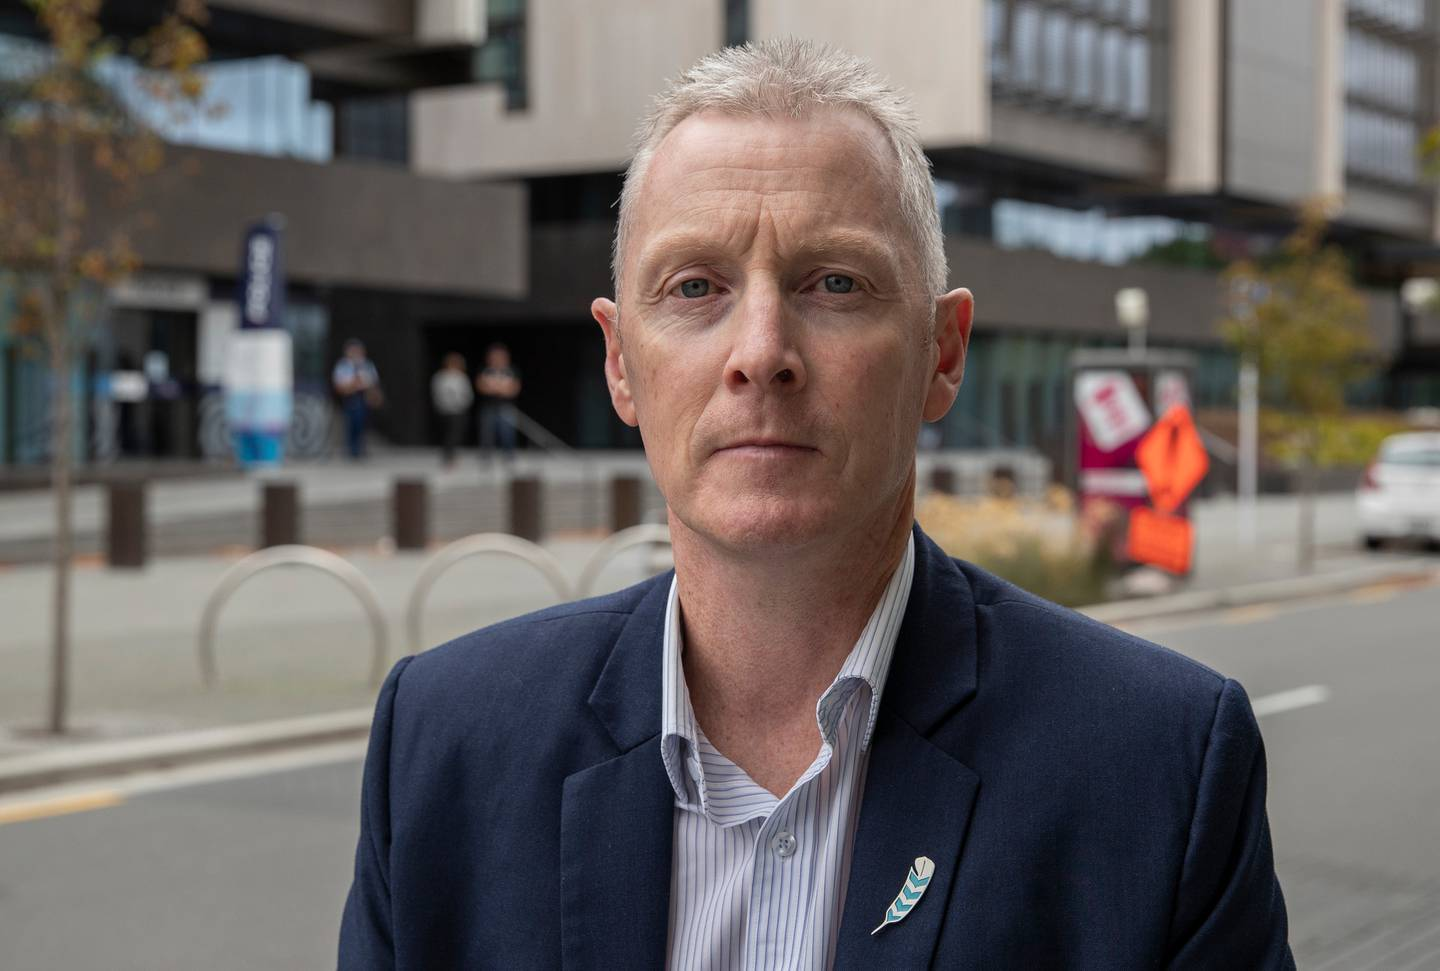 Police Association president Chris Cahill says officers can be overwhelmed by the number of family harm callouts. Photo / Mark Mitchell